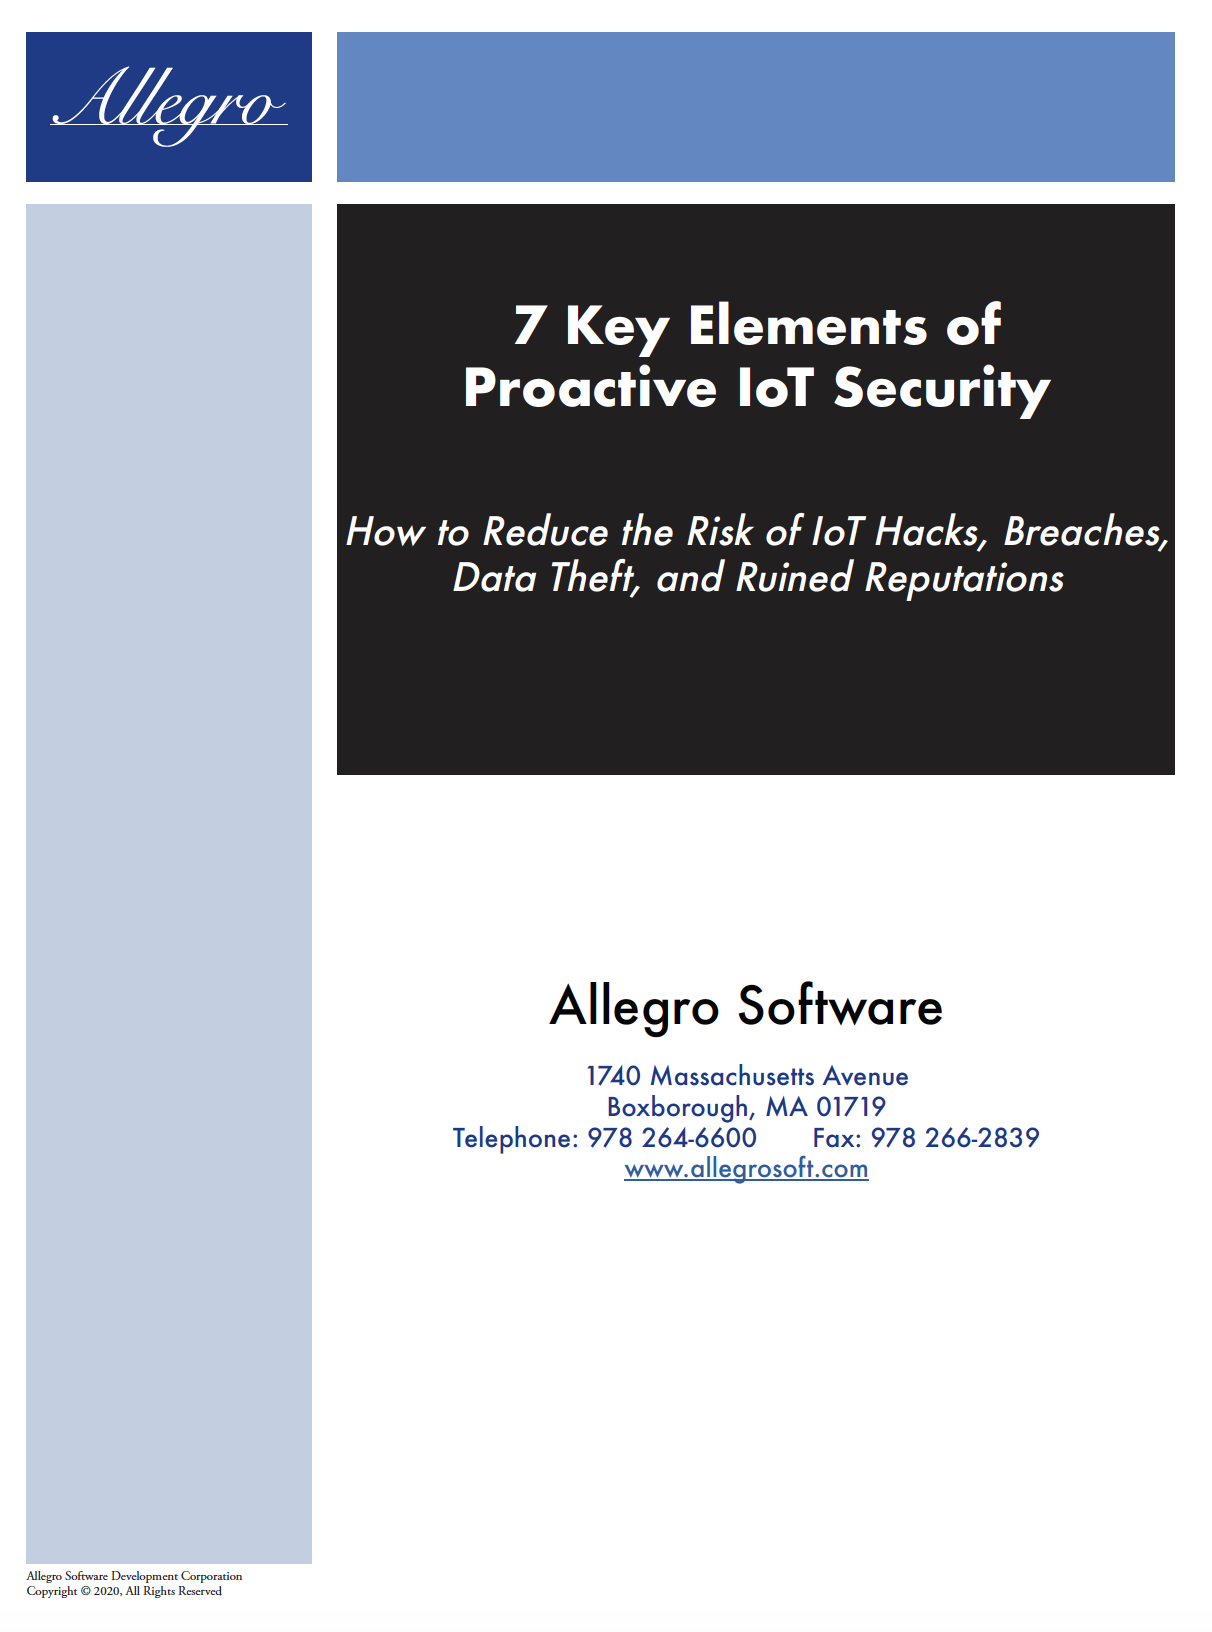 7 Key Elements for IoT Security